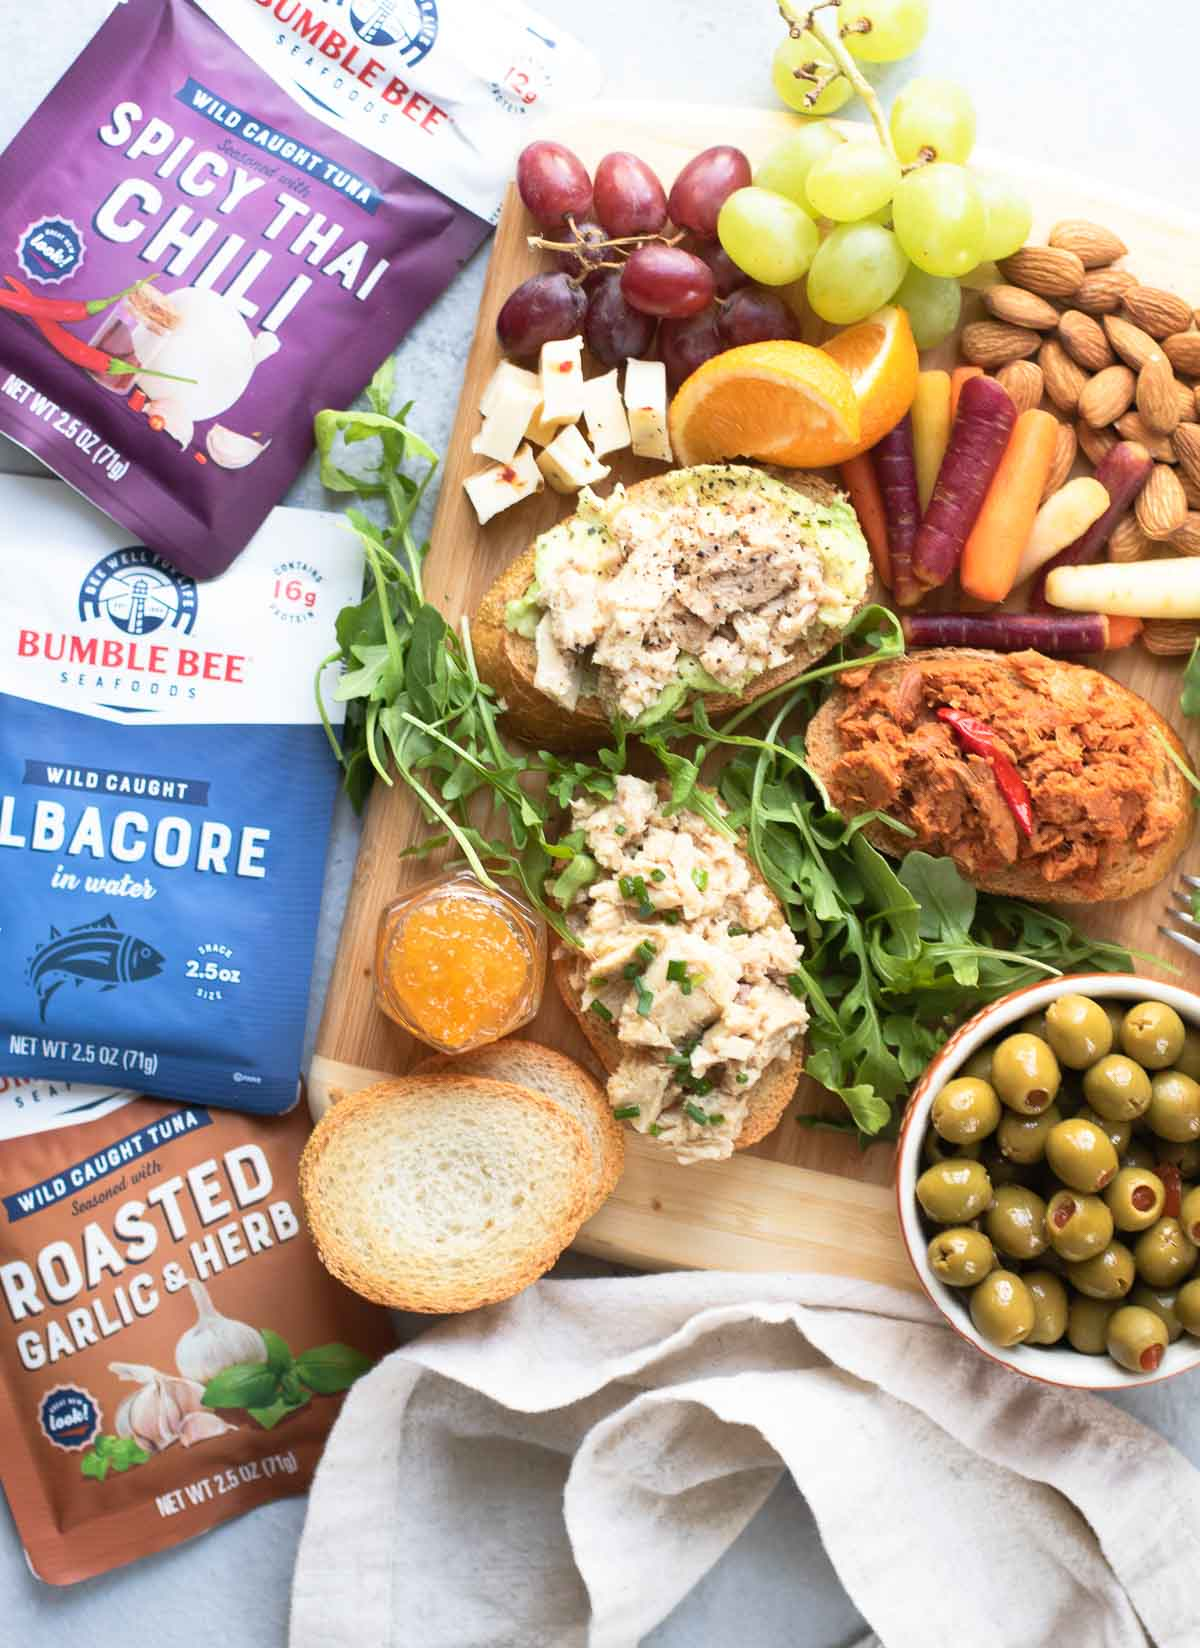 Crowded board with all tuna toasts and ingredients with packets of Bumble Bee Tuna on the side